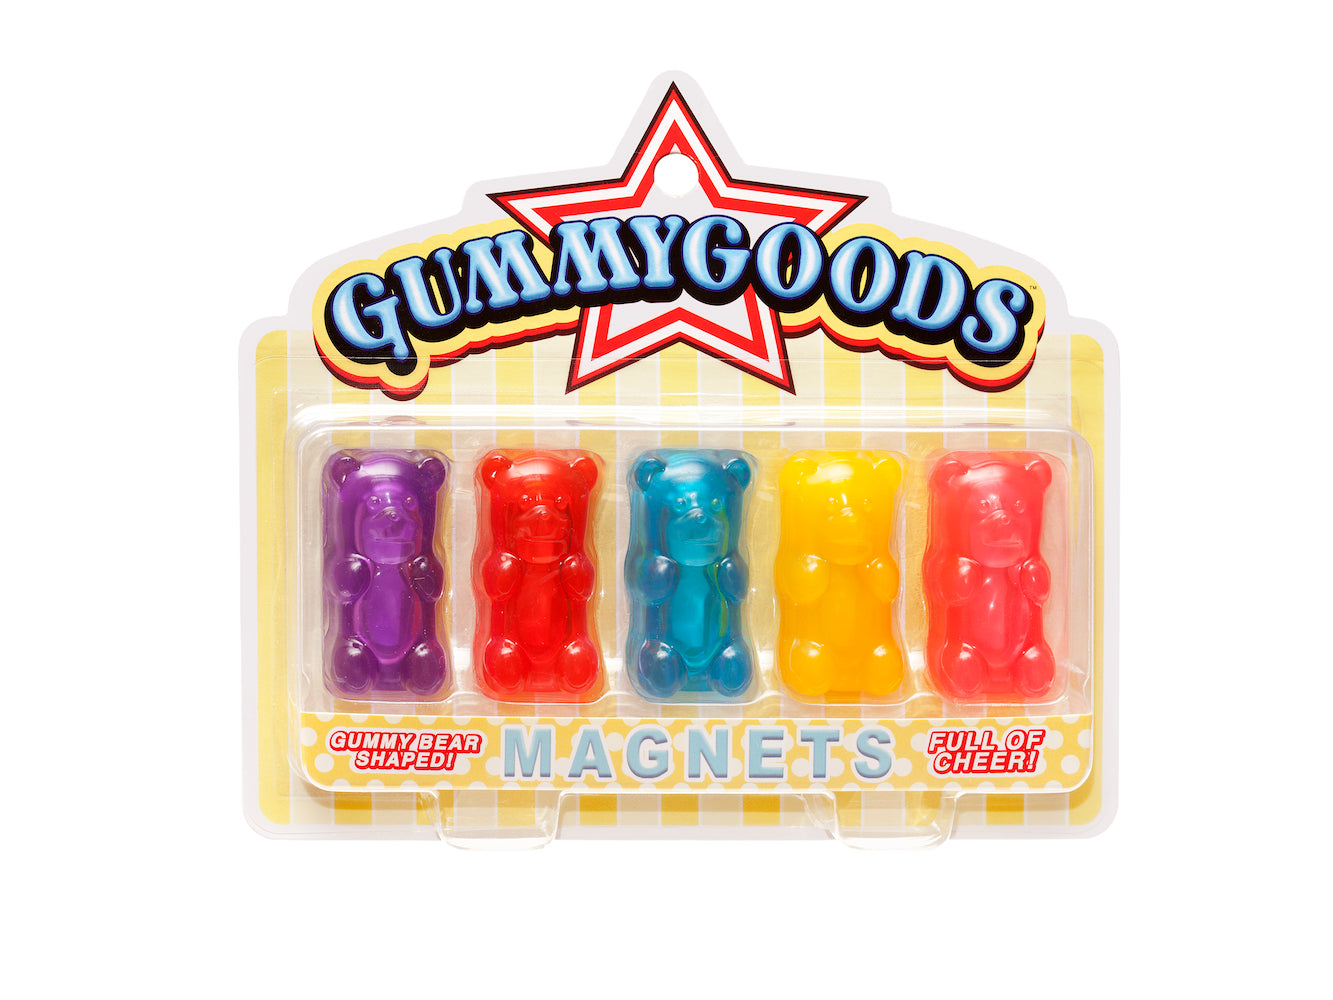 Gummygoods - Set of 5 Magnets - Mixed Colors